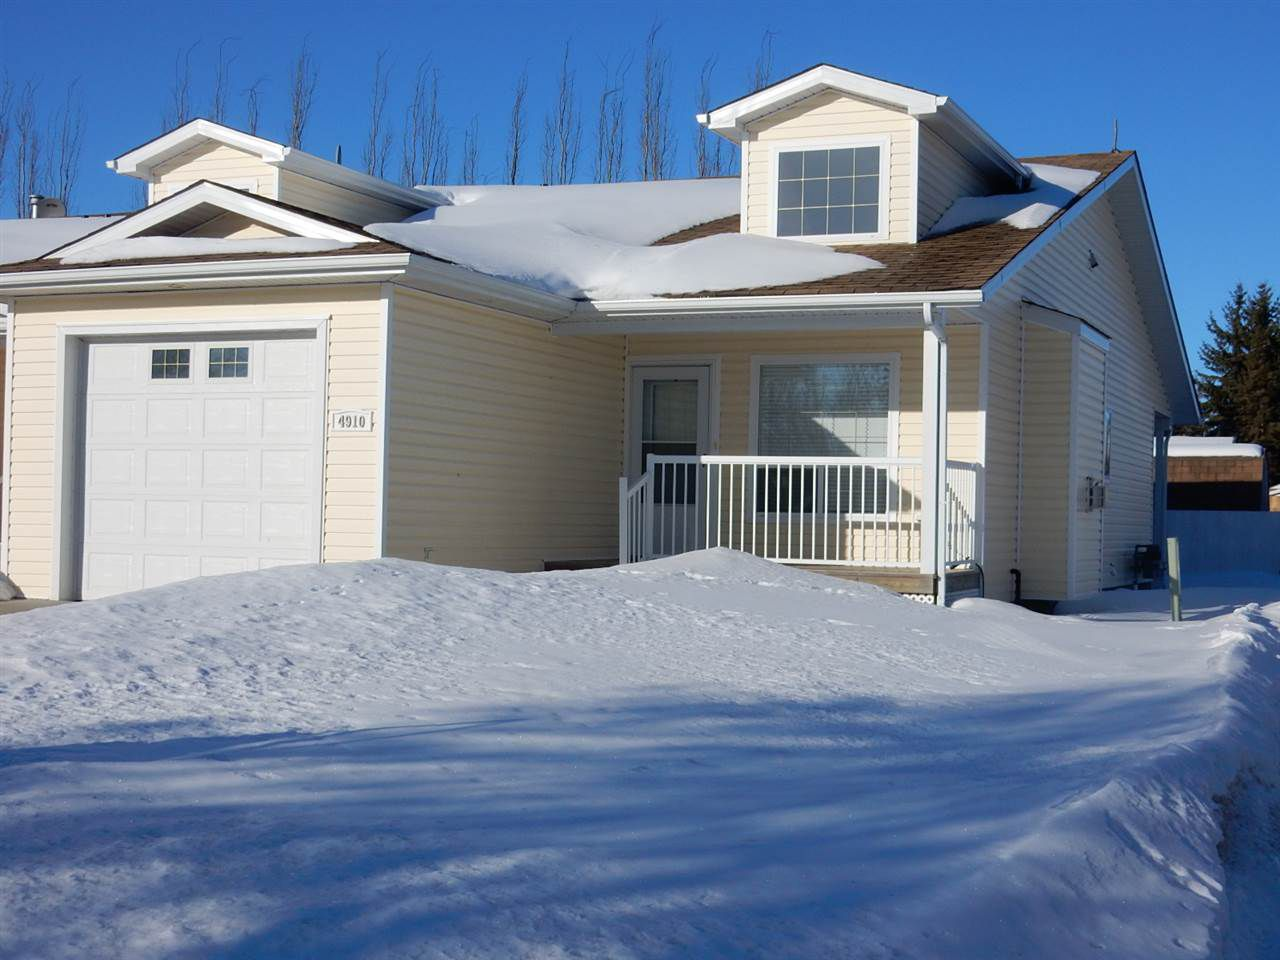 Main Photo: 4910 49 Street: Legal Townhouse for sale : MLS®# E4144383